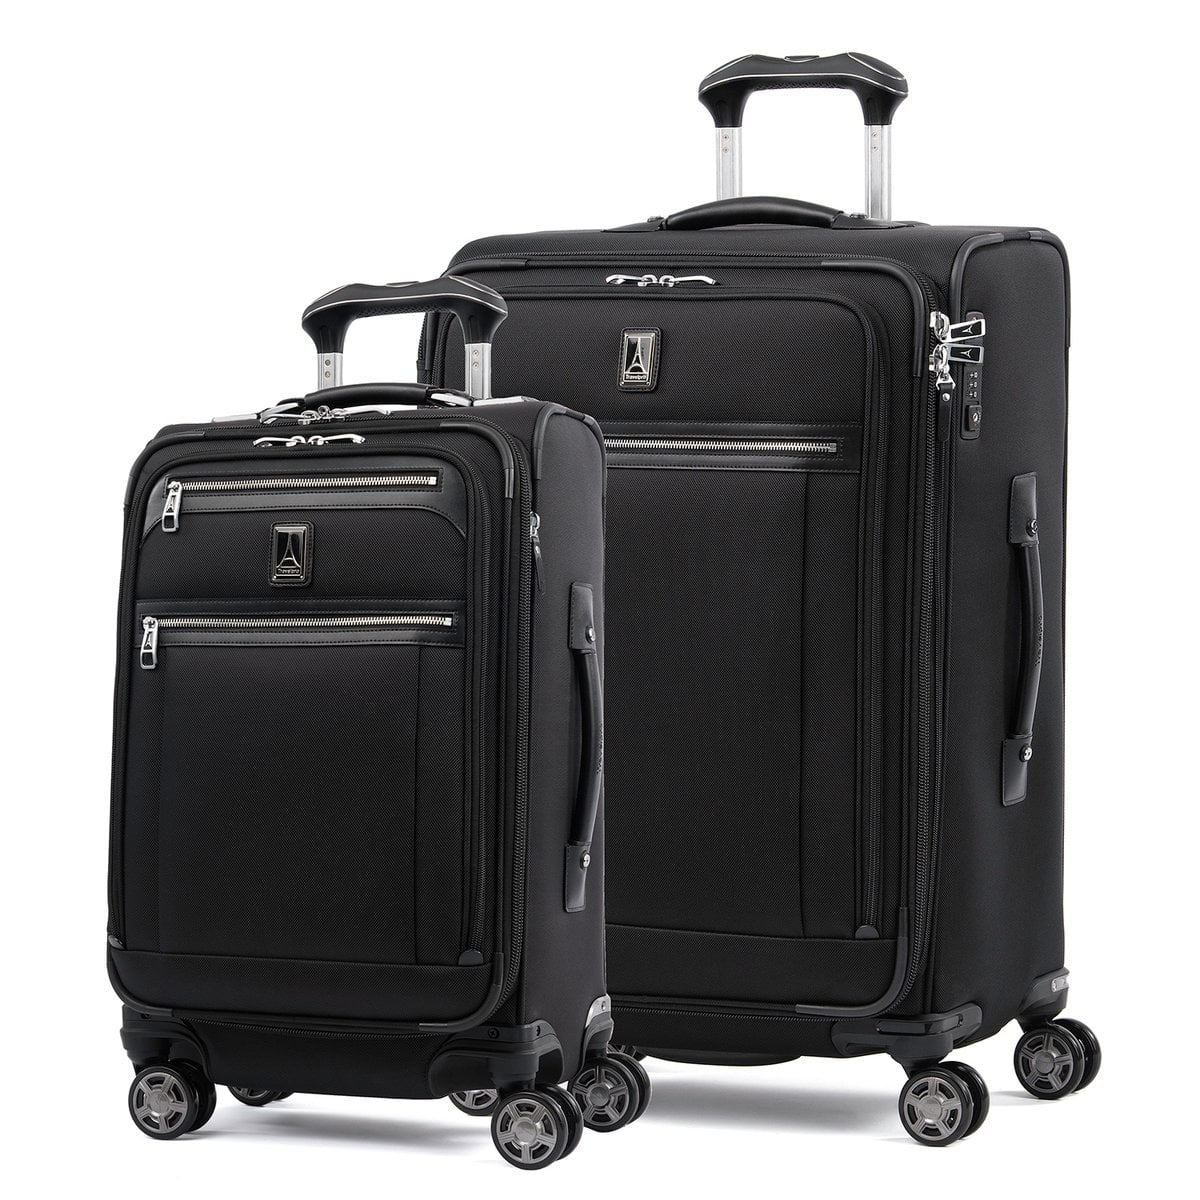 Travelpro platinum elite first class travel set - $416.50